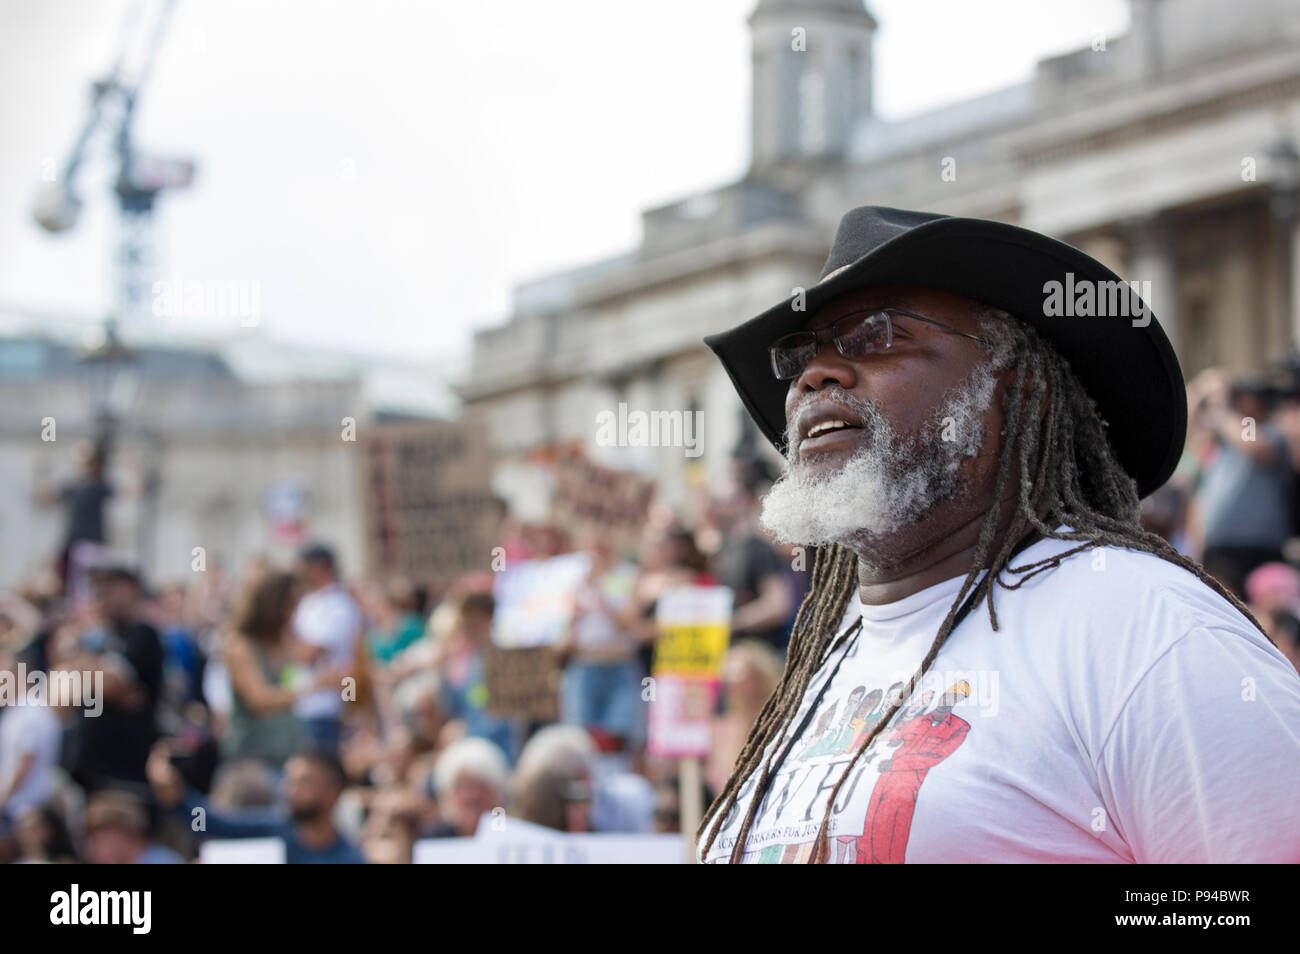 Protesters at the Carnival of Resistance, the anti-Trump protest organised in London, UK on the 13th July 2018. - Stock Image